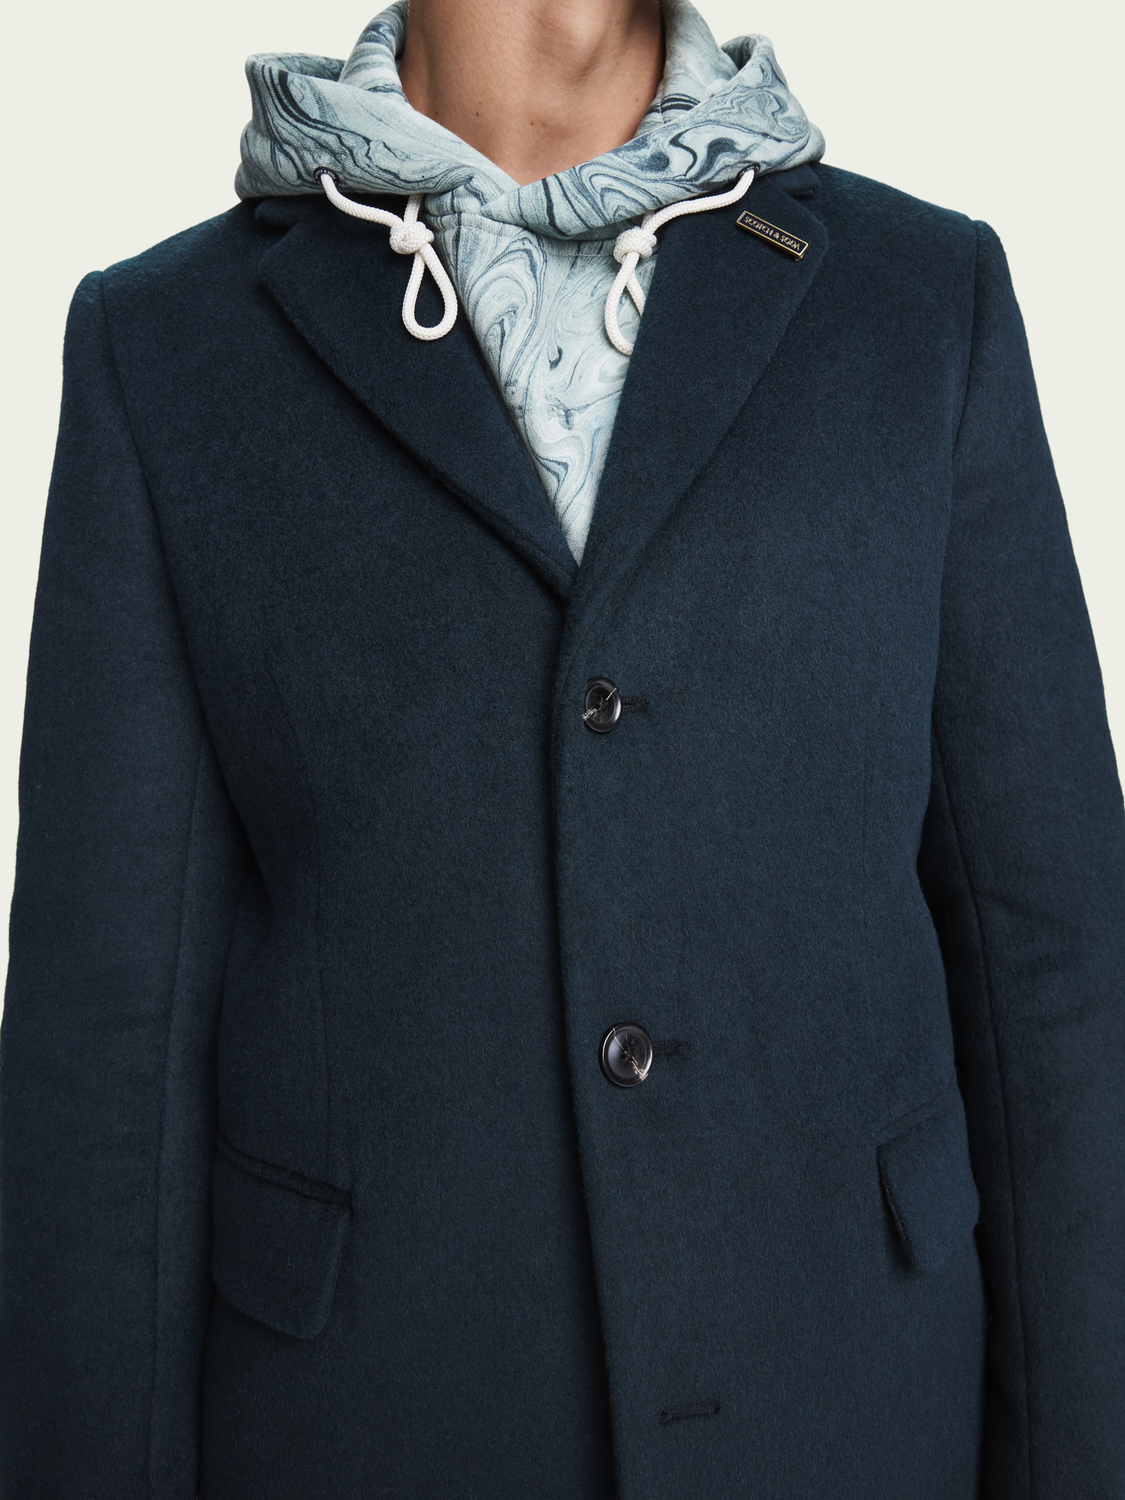 Men Classic wool-blend single breasted overcoat